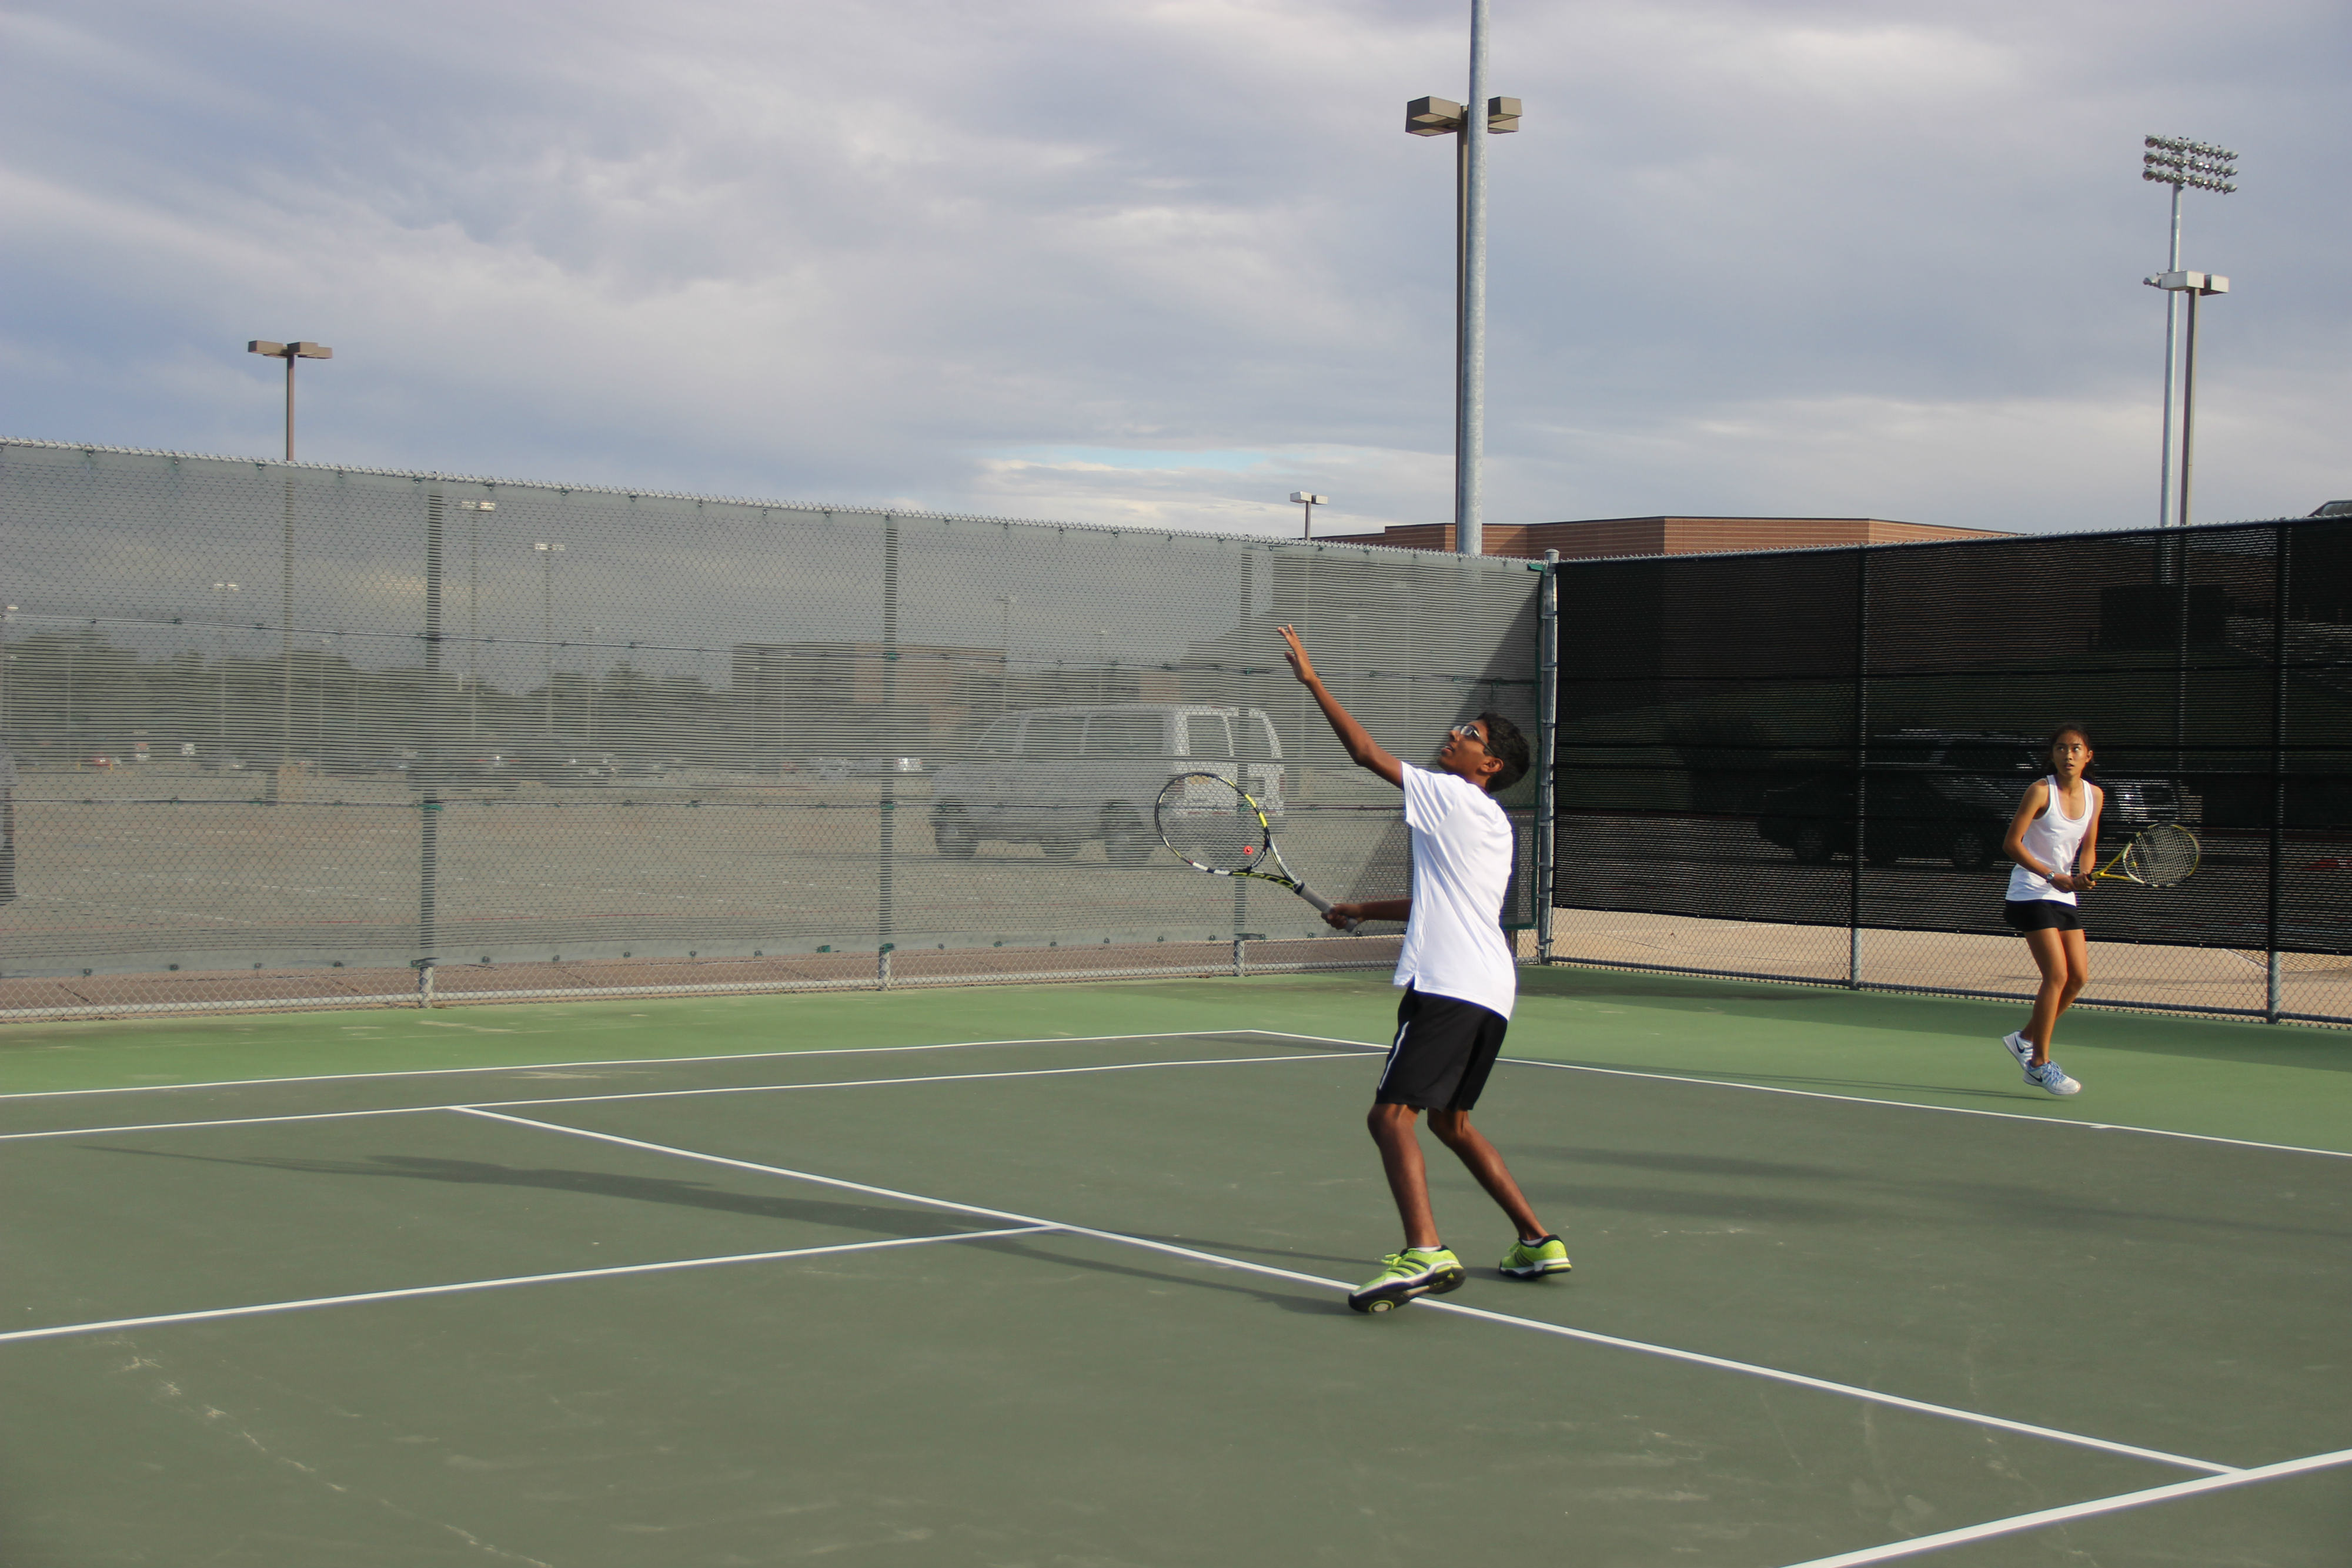 Arvind Arunachalam prepares to return the ball back to the Skyline opponent in his mixed doubles match.  Coppell won the match 8-0. Photo by Kelly Wei.